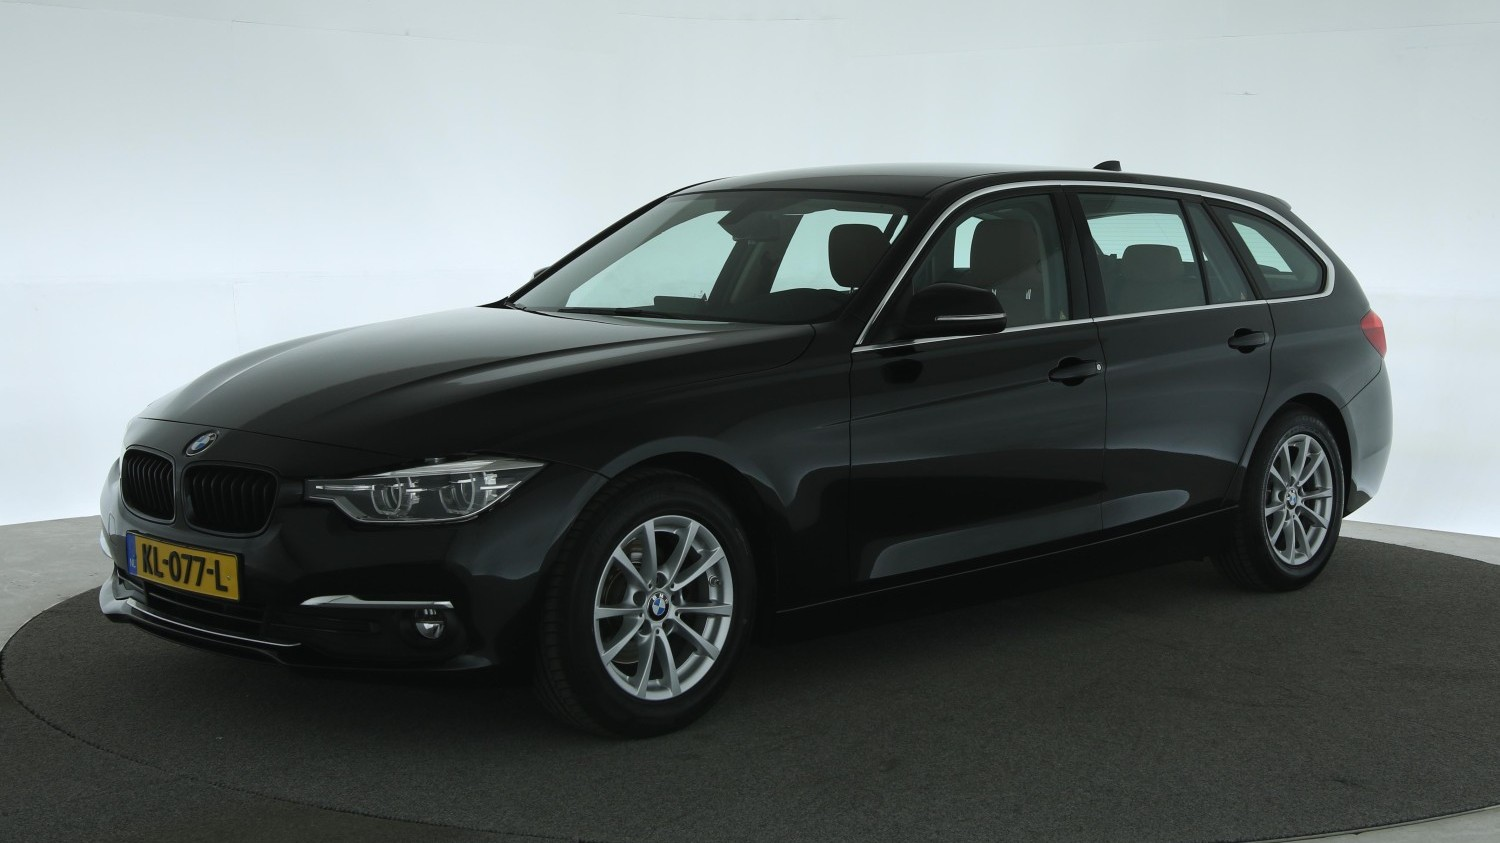 BMW 3-serie Station 2016 KL-077-L 1